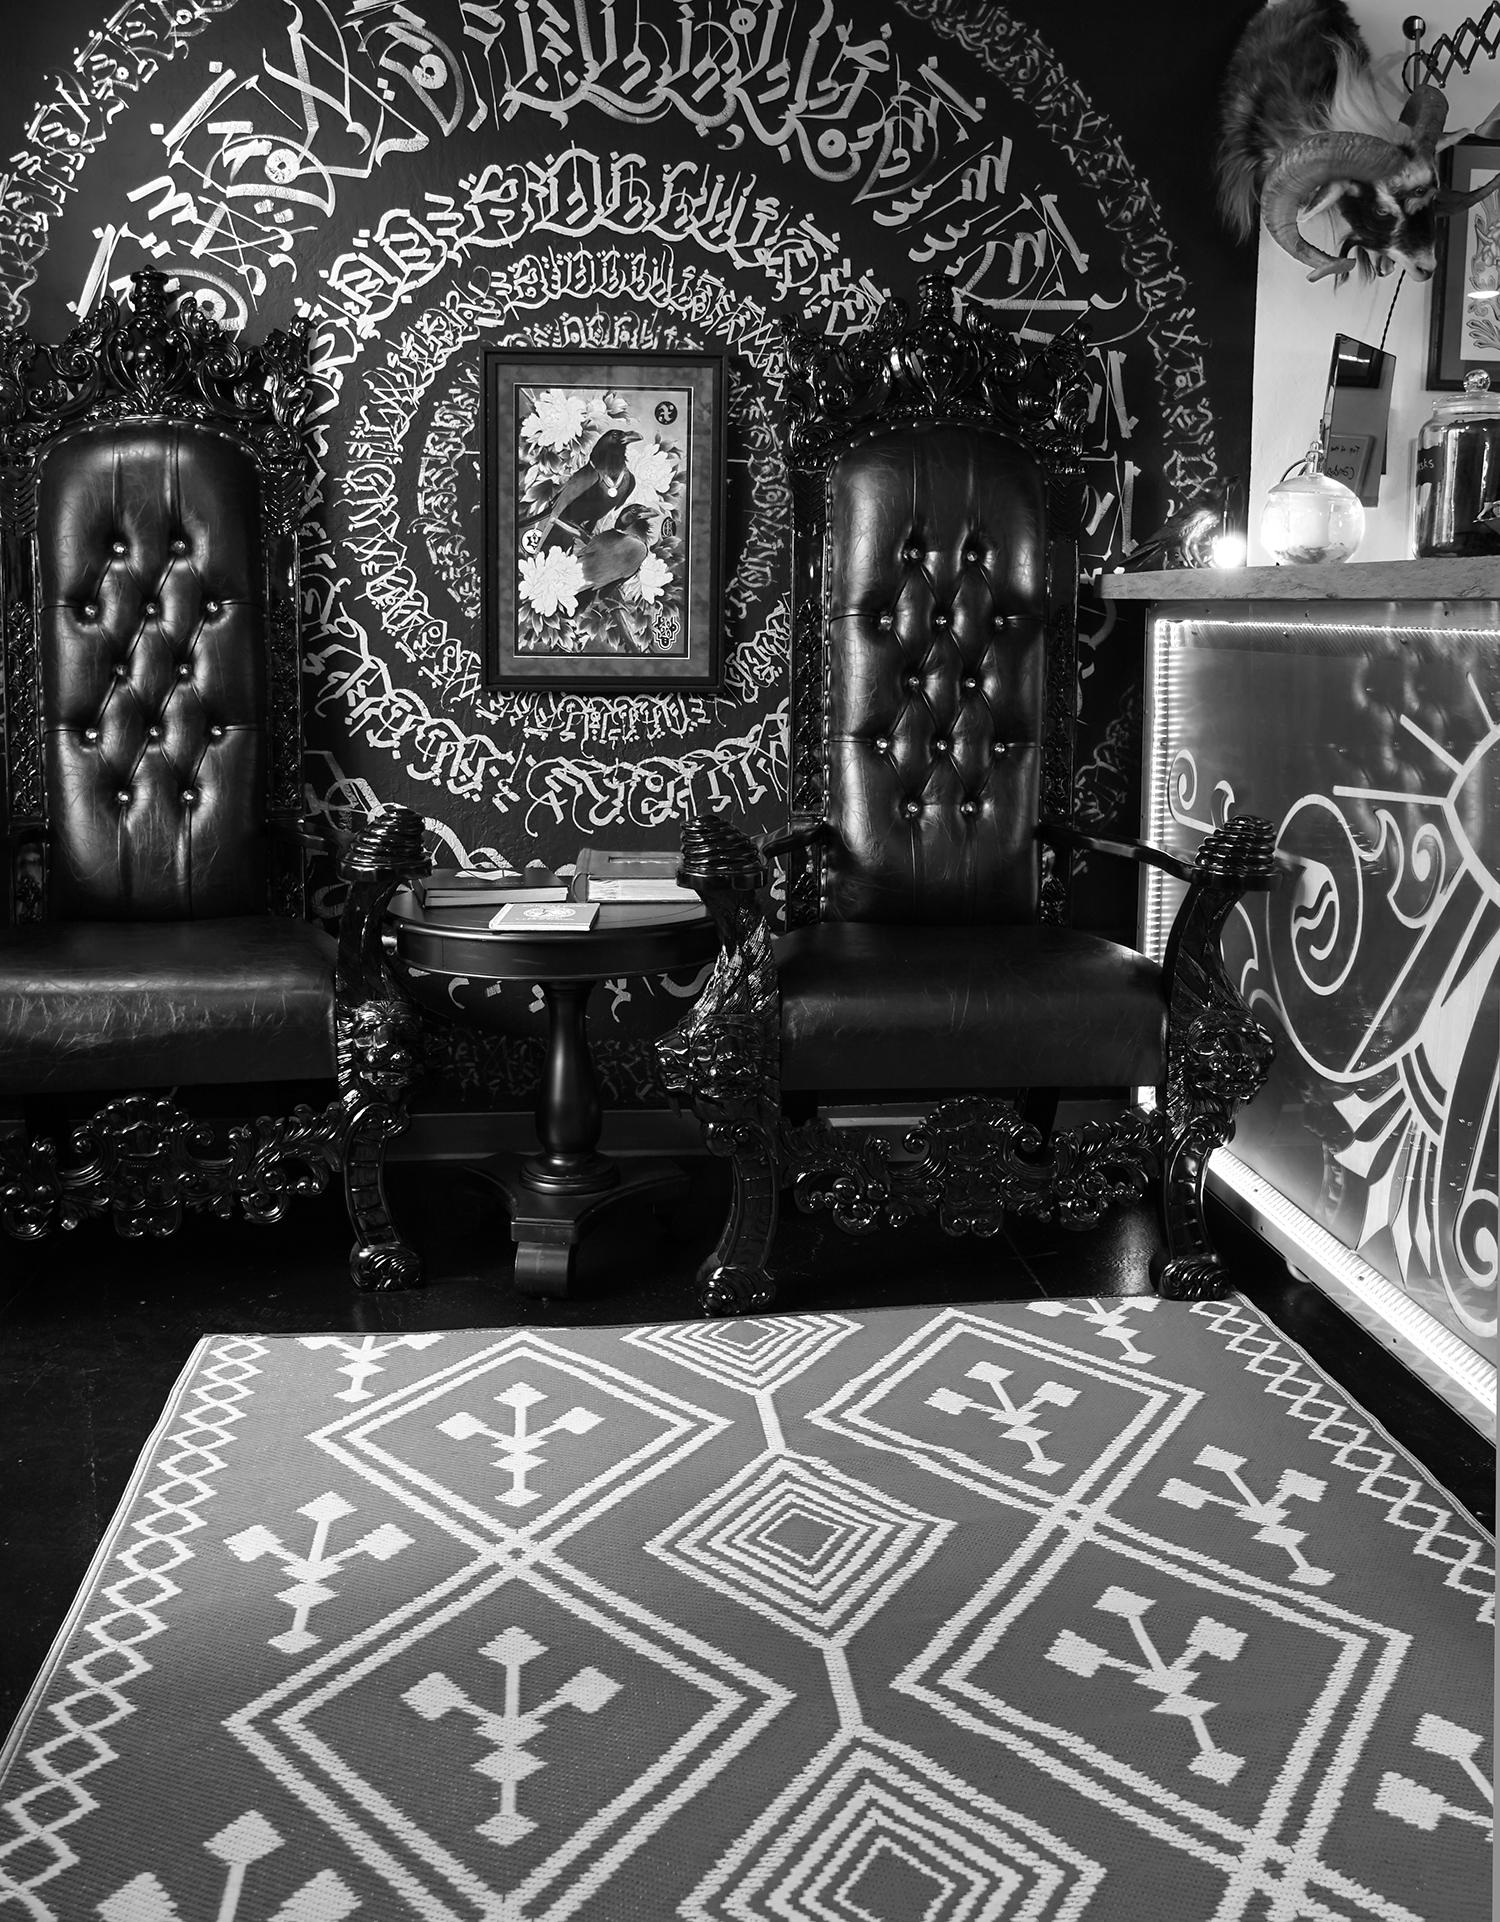 oakland's old crow studio entrance, with abstract calligraphy and leather chairs